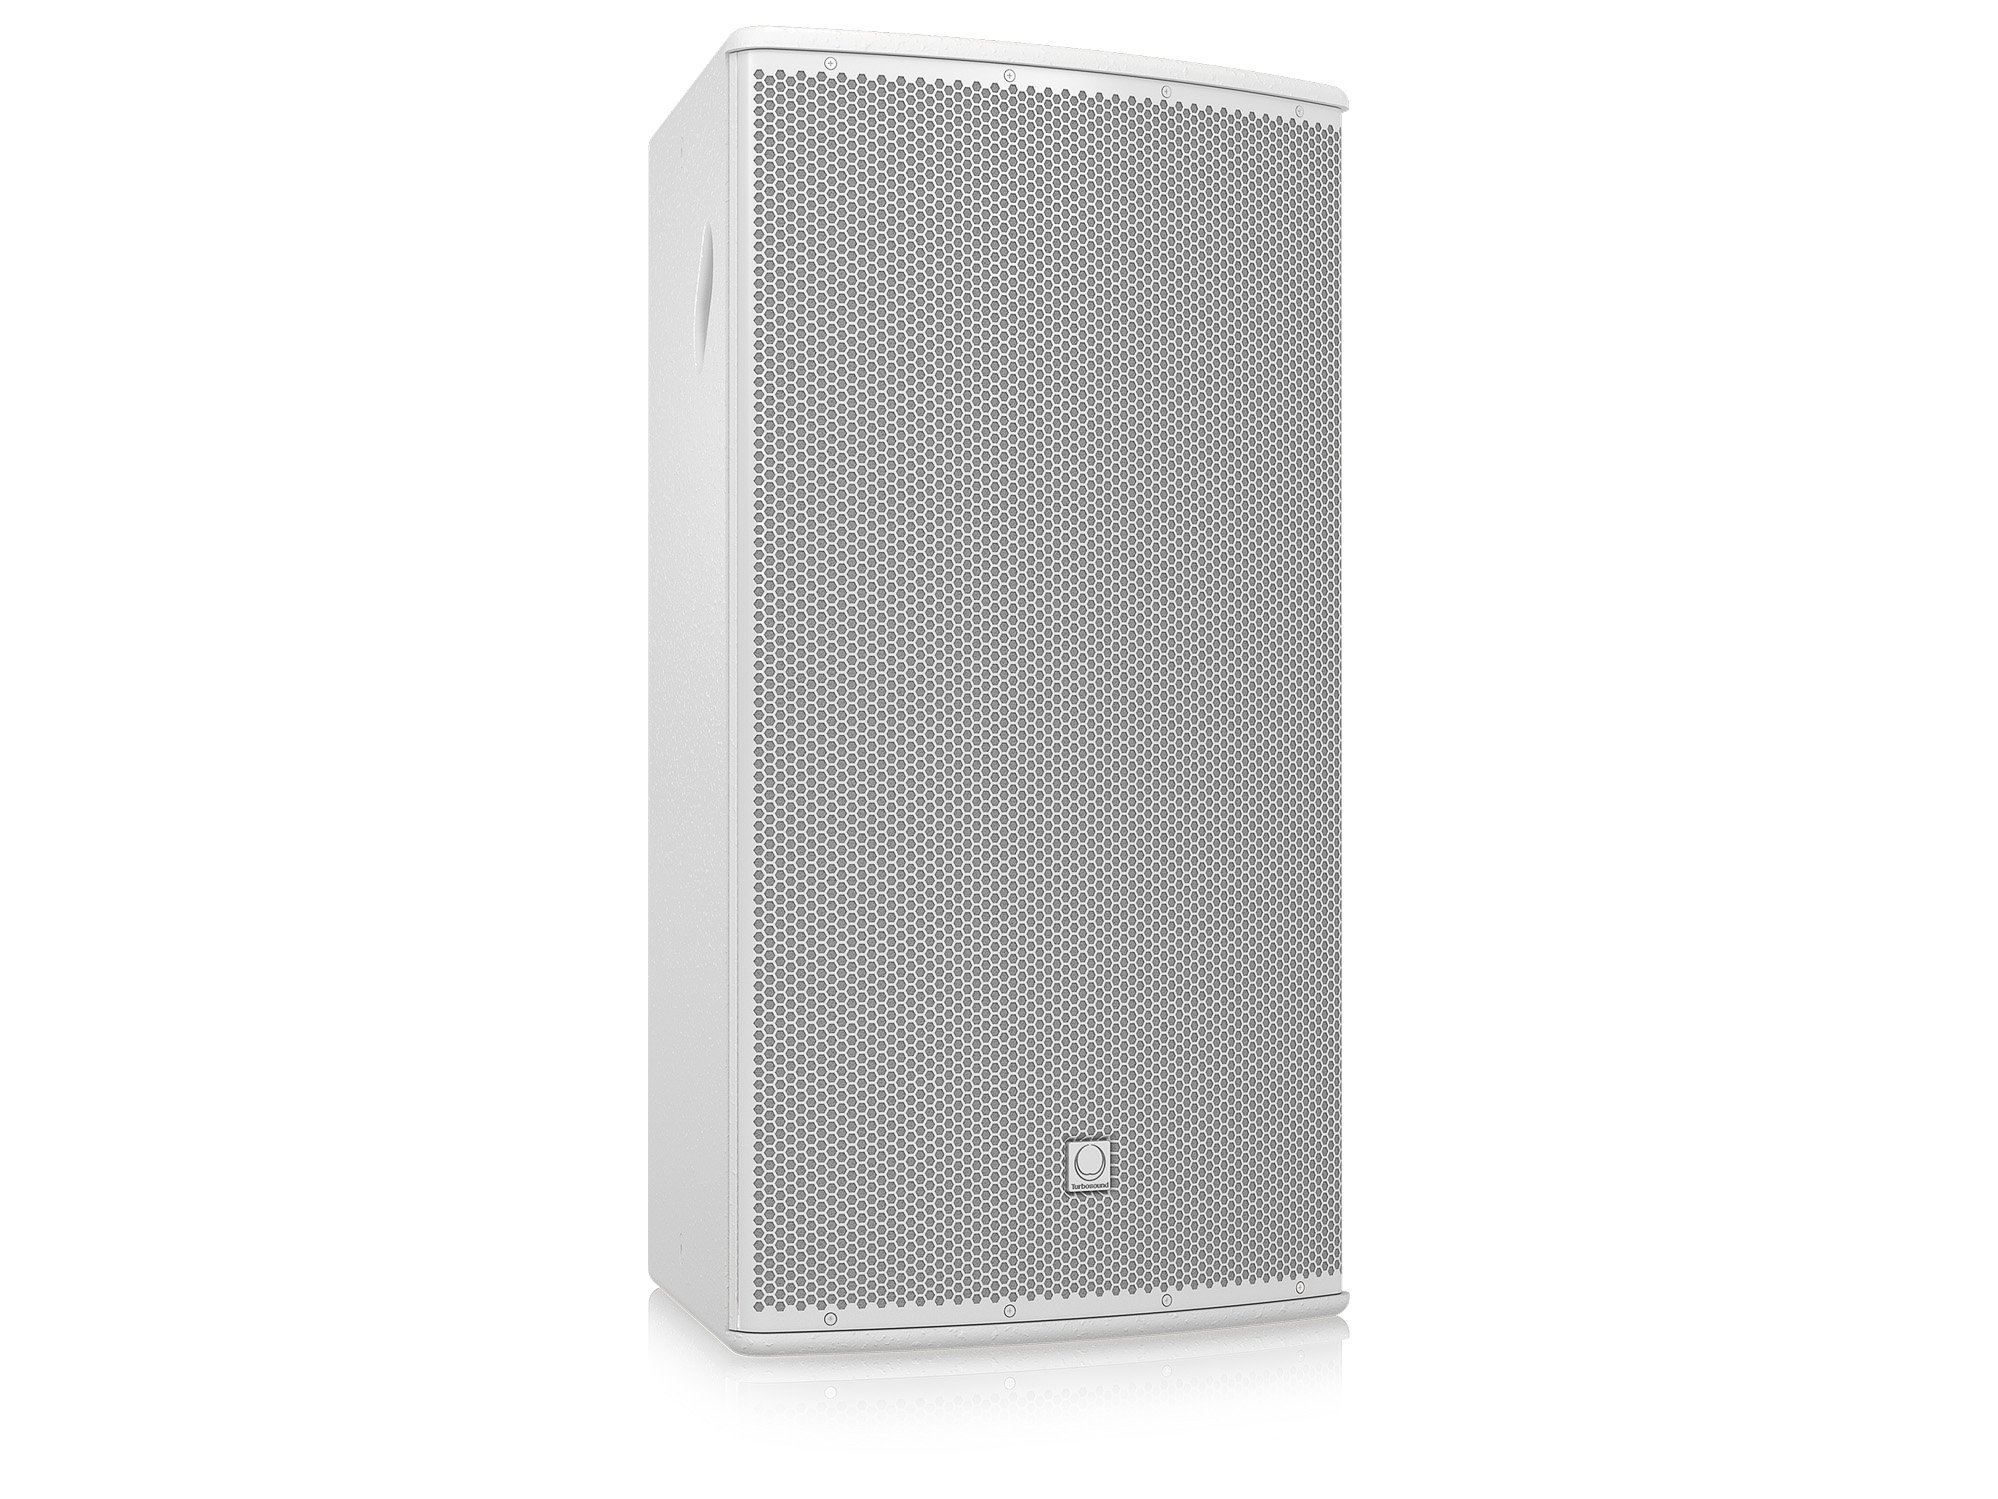 """Turbosound TCS-152/94-WH 15"""" 500W (8 Ohms) 2-Way Full-Range Passive/Bi-Amp Loudspeaker with 90°x40° Dispersion in White TCS-152/94-WH"""